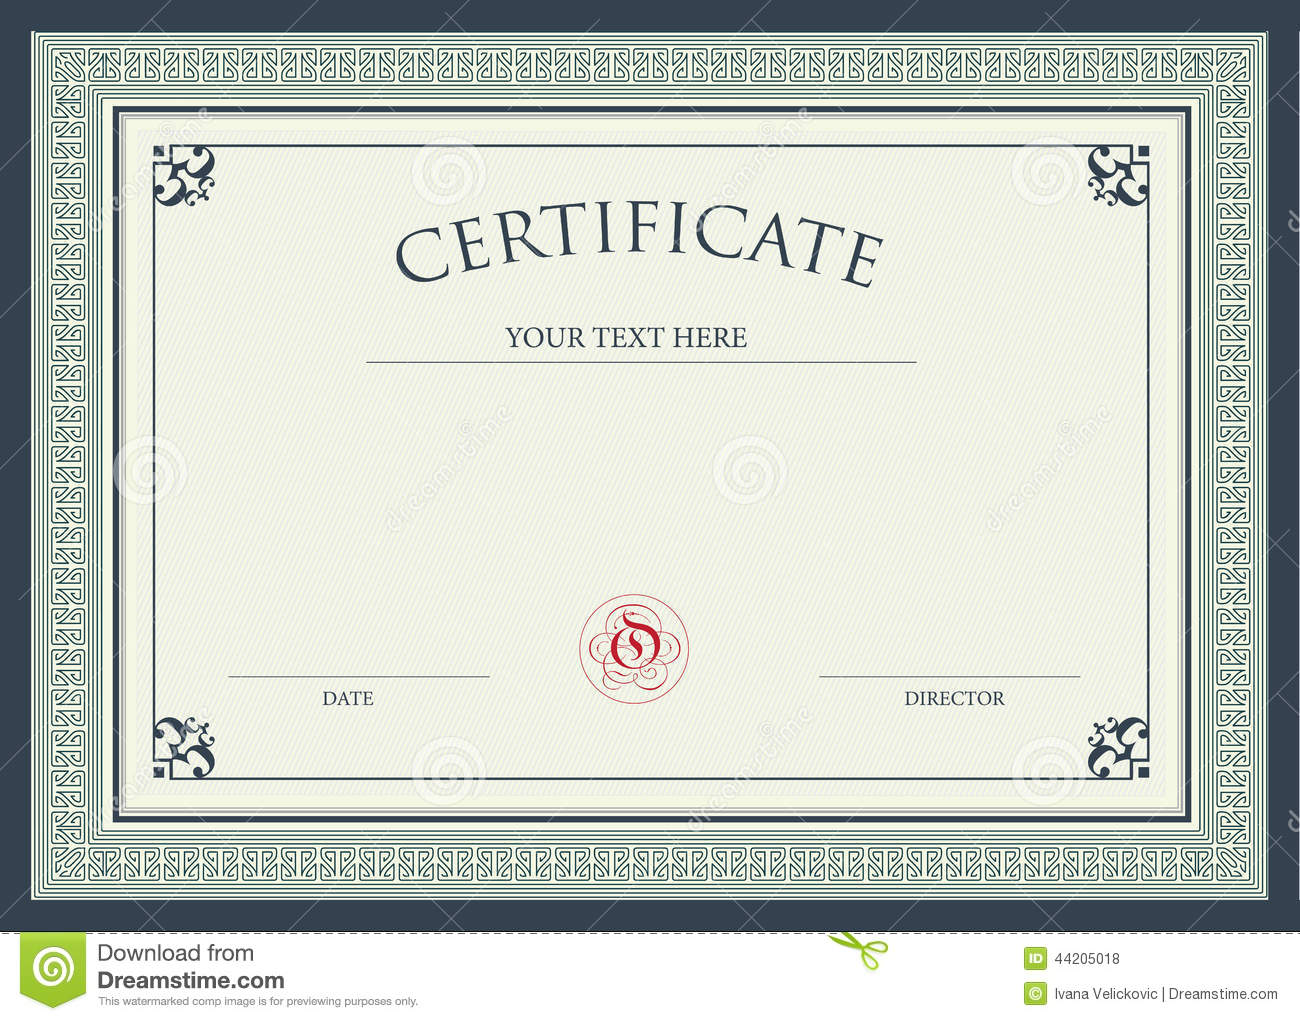 Blank certificate templates no border choice image certificate blank certificate templates no border gallery certificate design certificate template no border image professional quotation award yelopaper Gallery